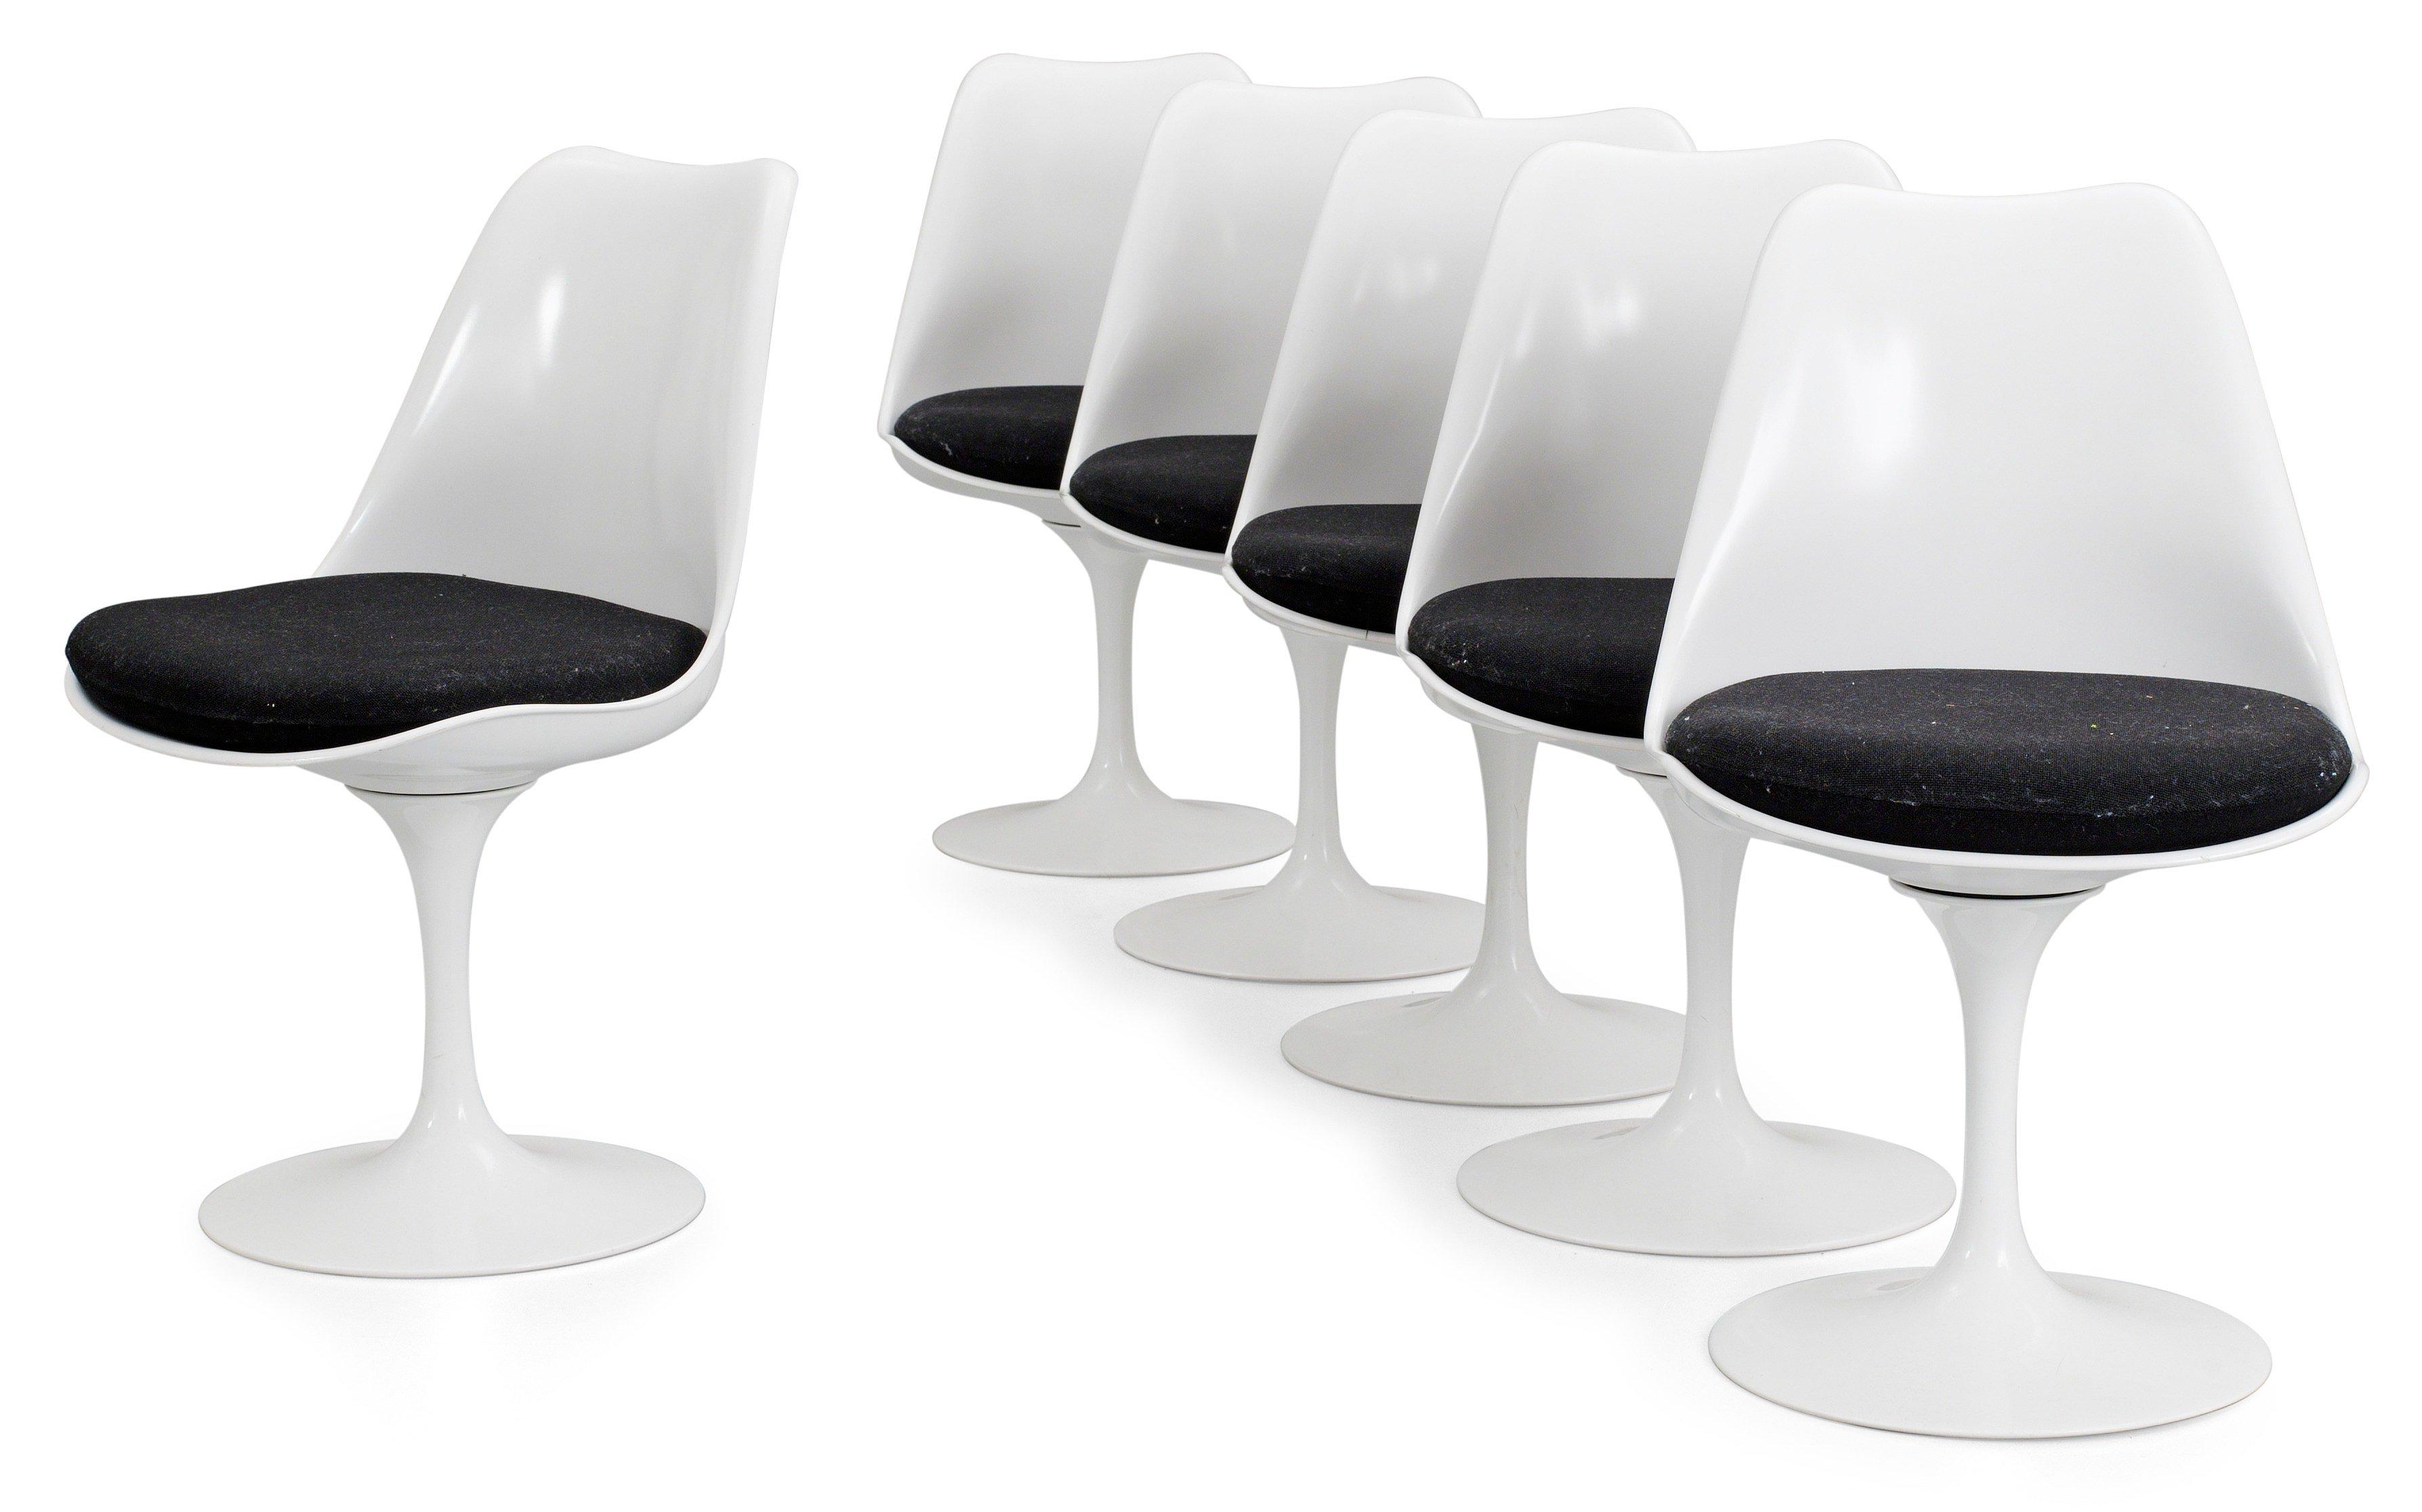 Uncategorized Eero Saarinen Tulip Chair a set of six eero saarinen tulip chairs by knoll international 4228402 bukobject